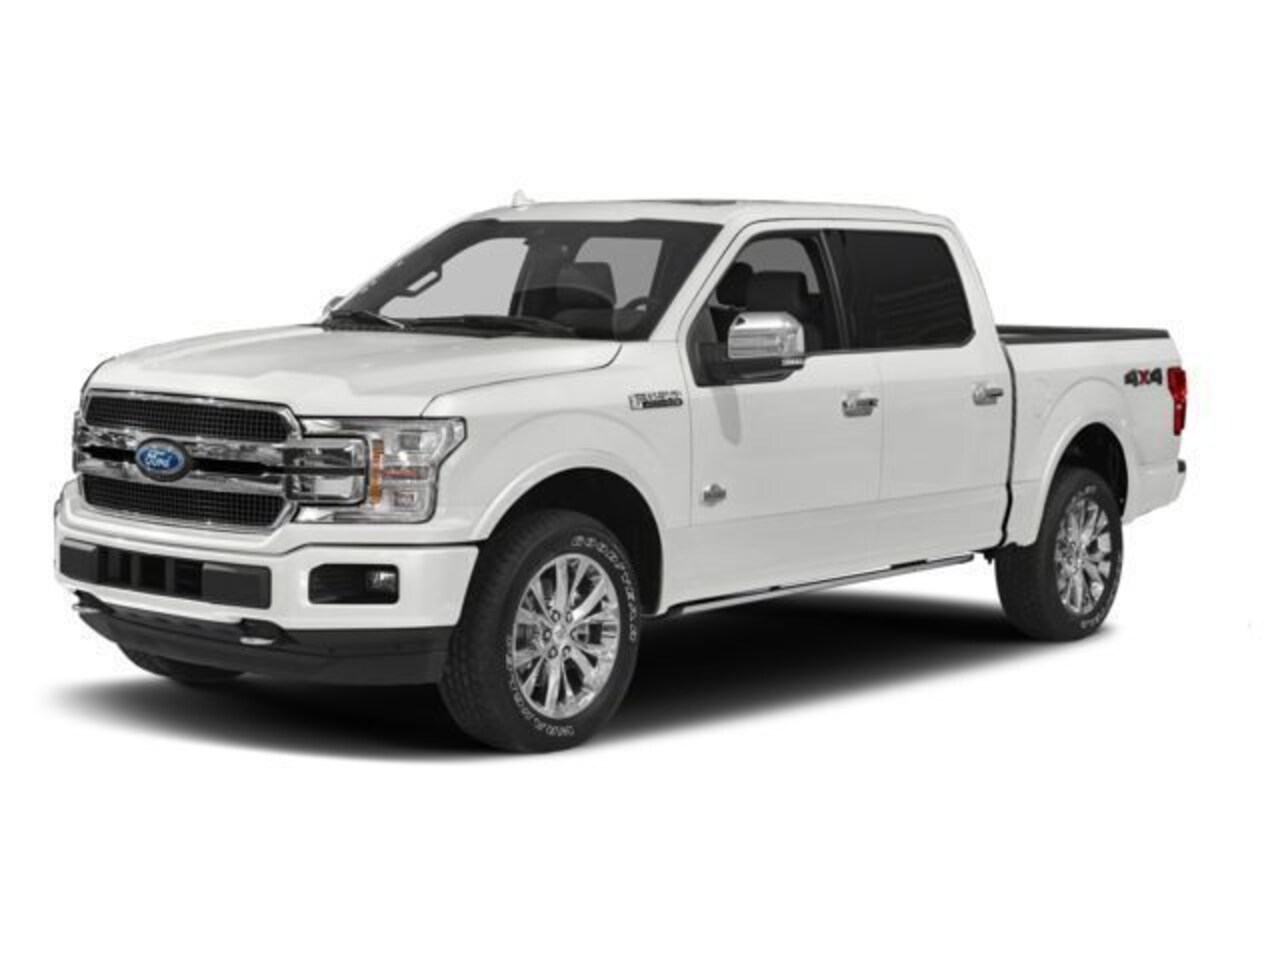 2018 Ford F-150 Crew Cab Truck